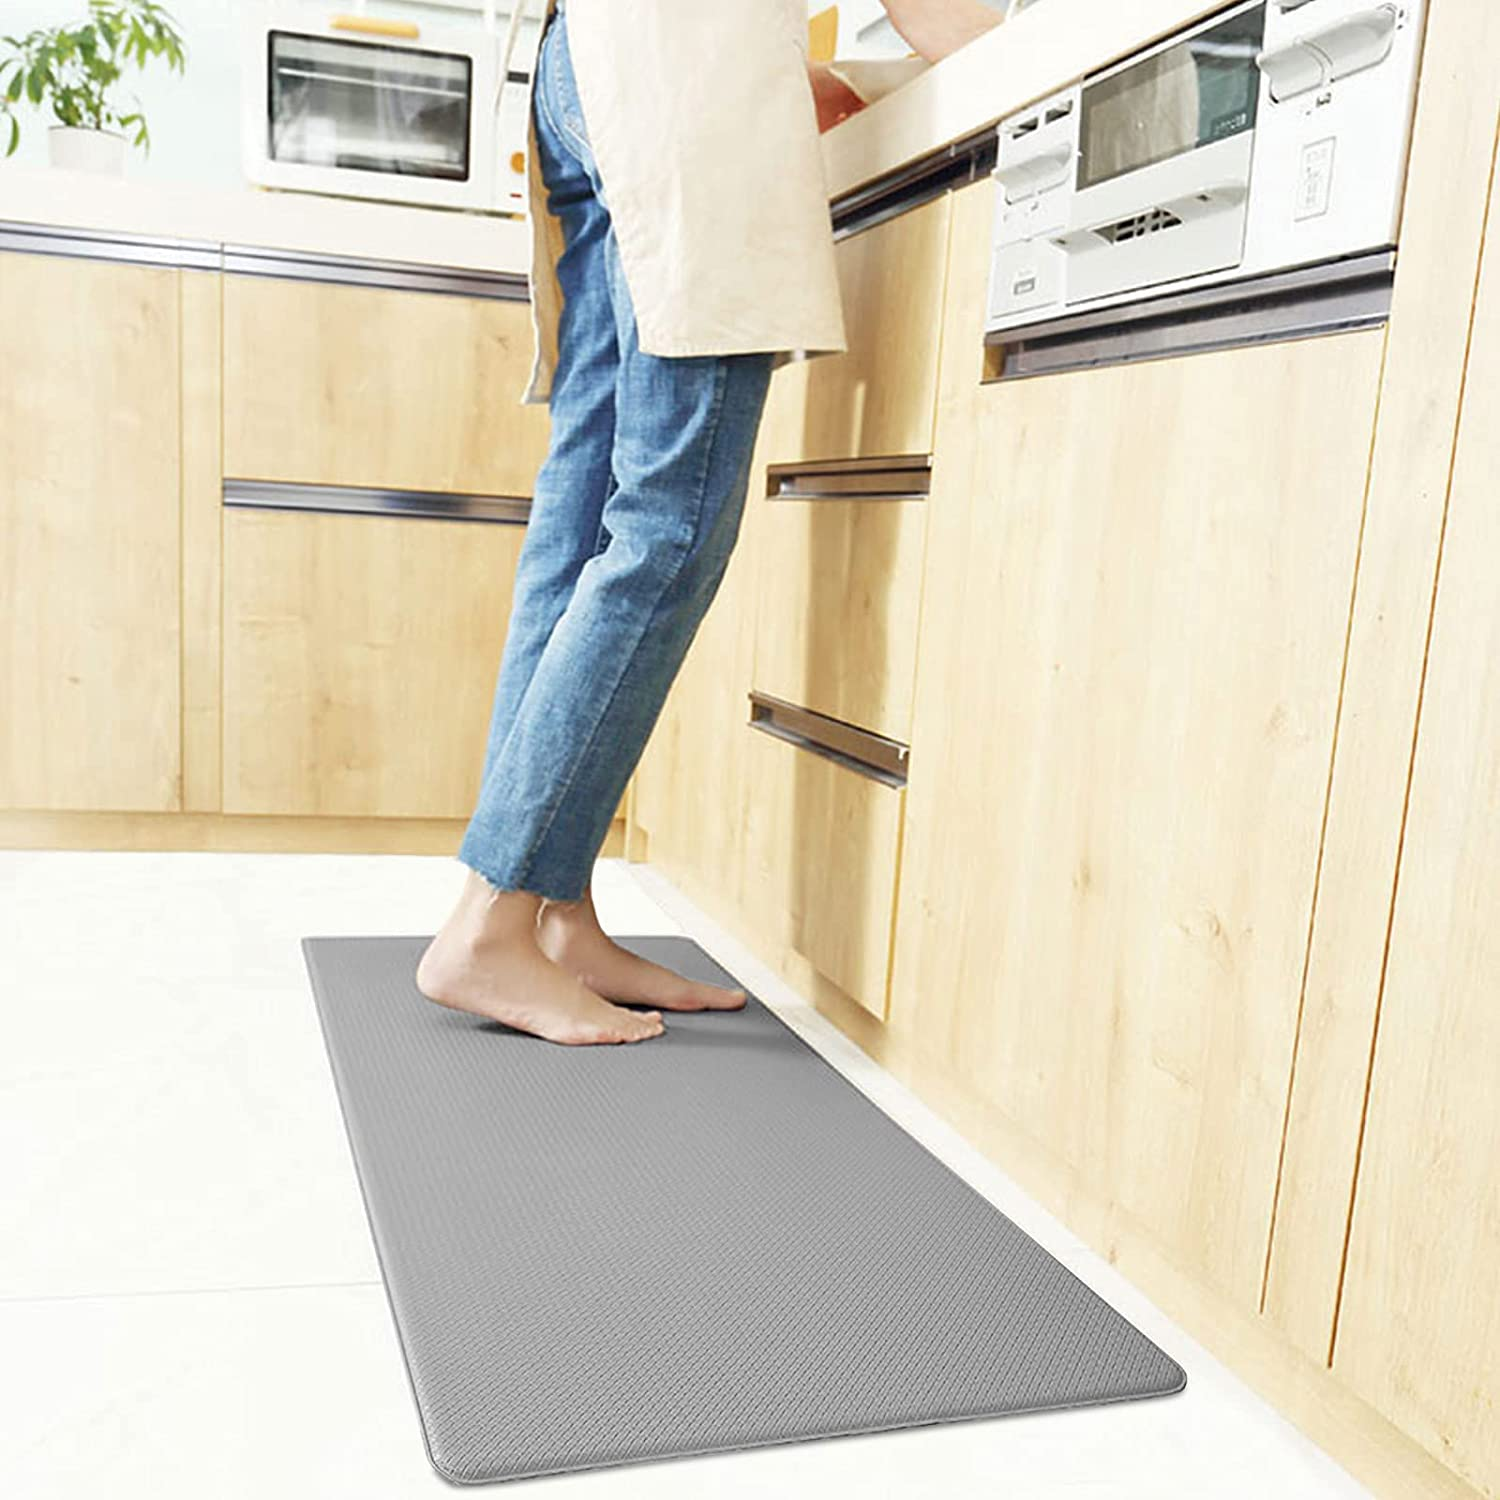 LUXEAR Anti Fatigue kitchen Mat - Waterproof Anti Fatigue Floor Mat with Non-Slip Bottom - Cushioned Comfort Floor Mat - Comfort at Kitchen, Home, Office, Laundry Room - Gray